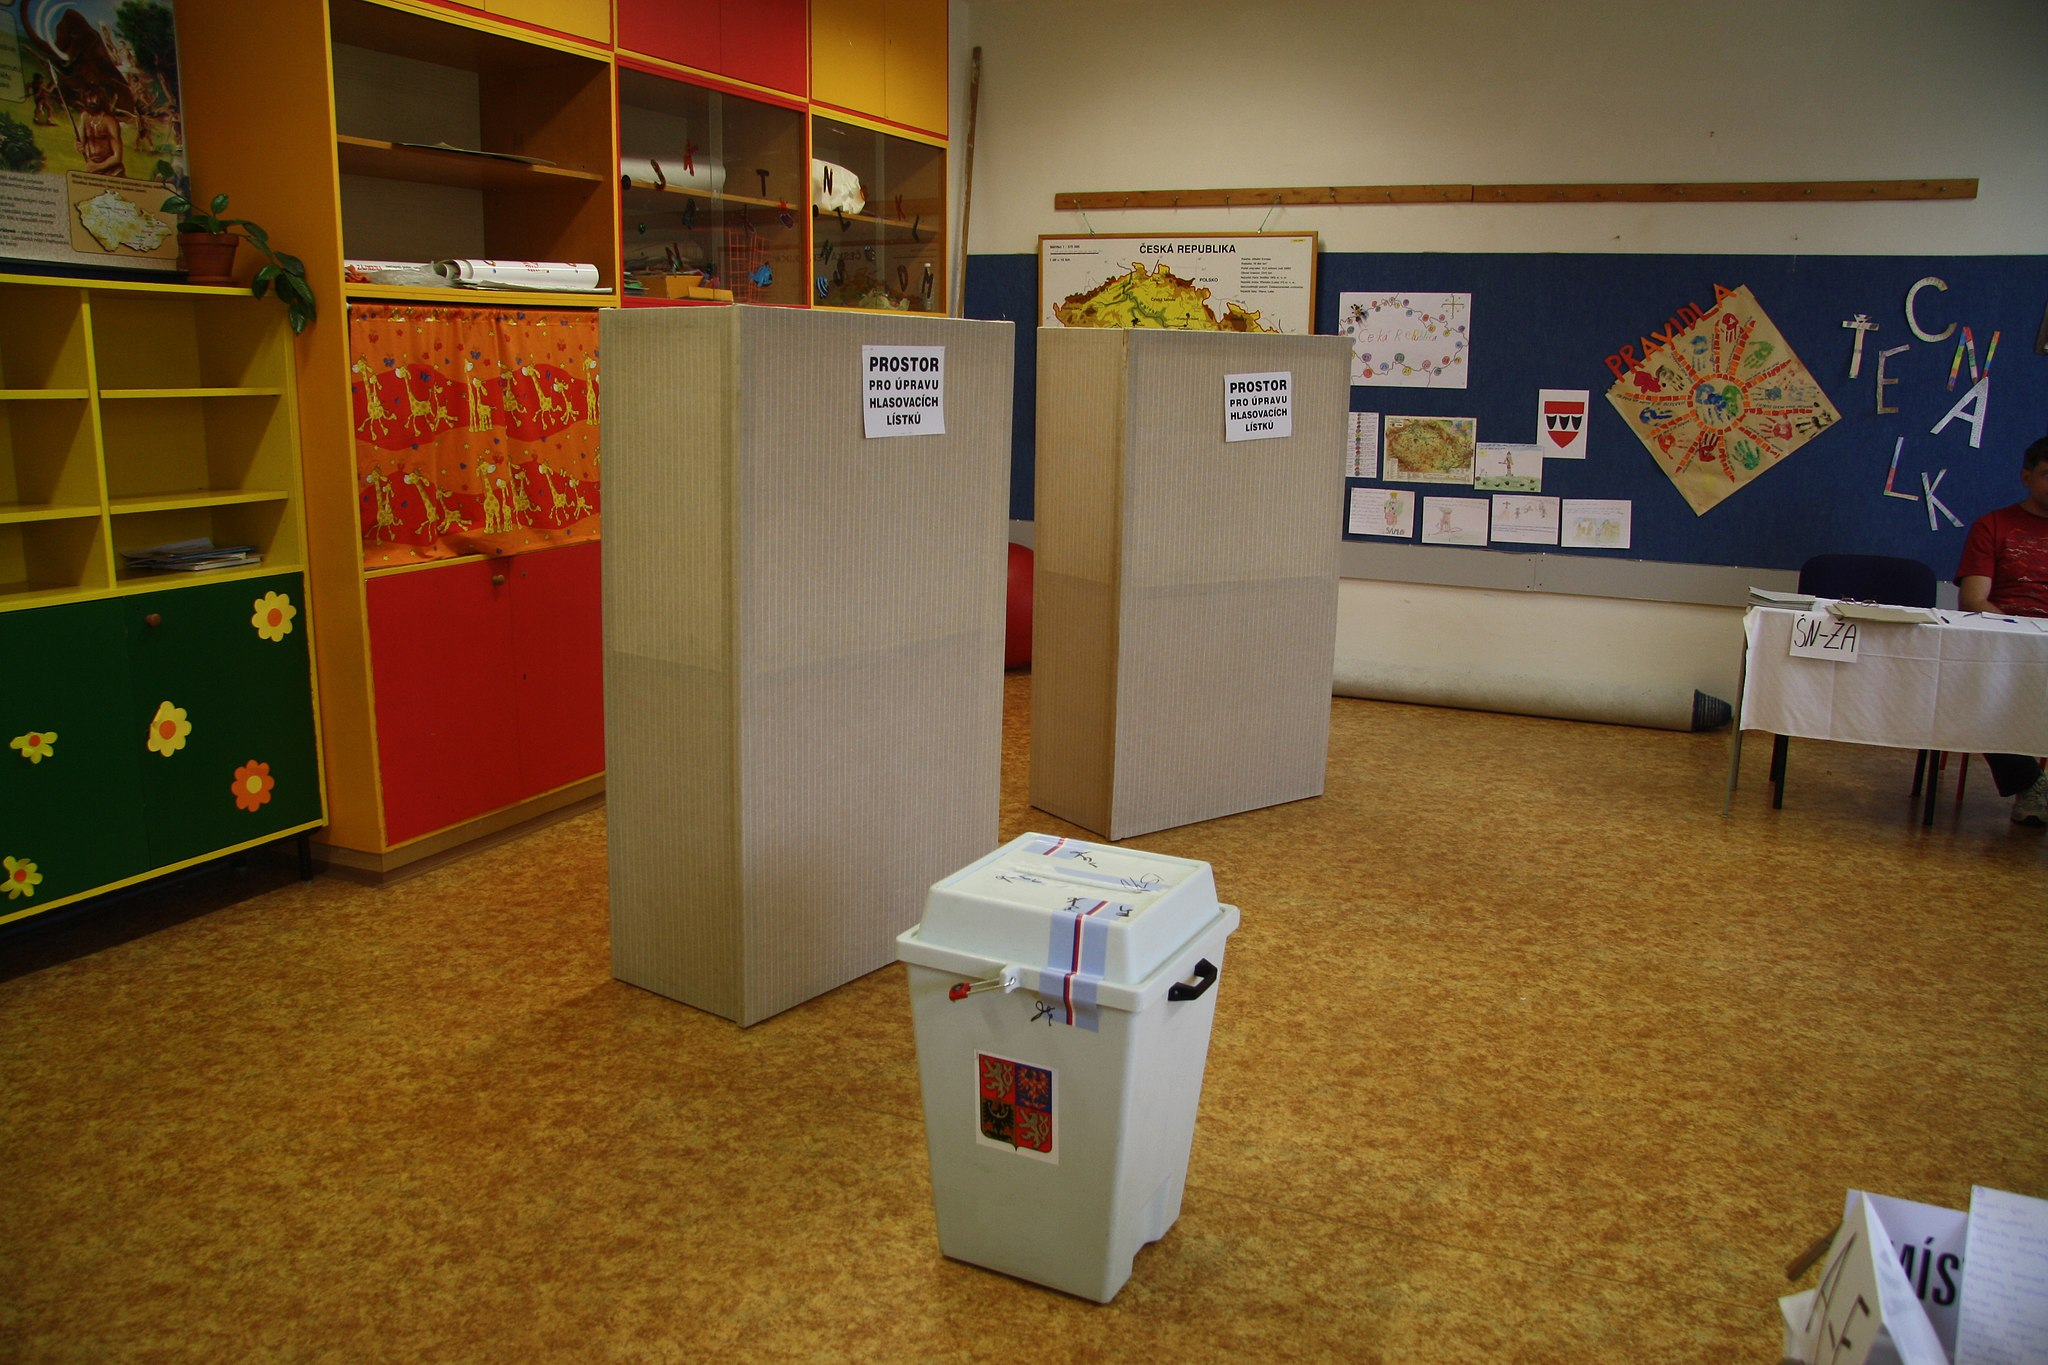 Polling_room_for_municipal_votes_in_Benešova_elementary_school_in_Třebíč.JPG